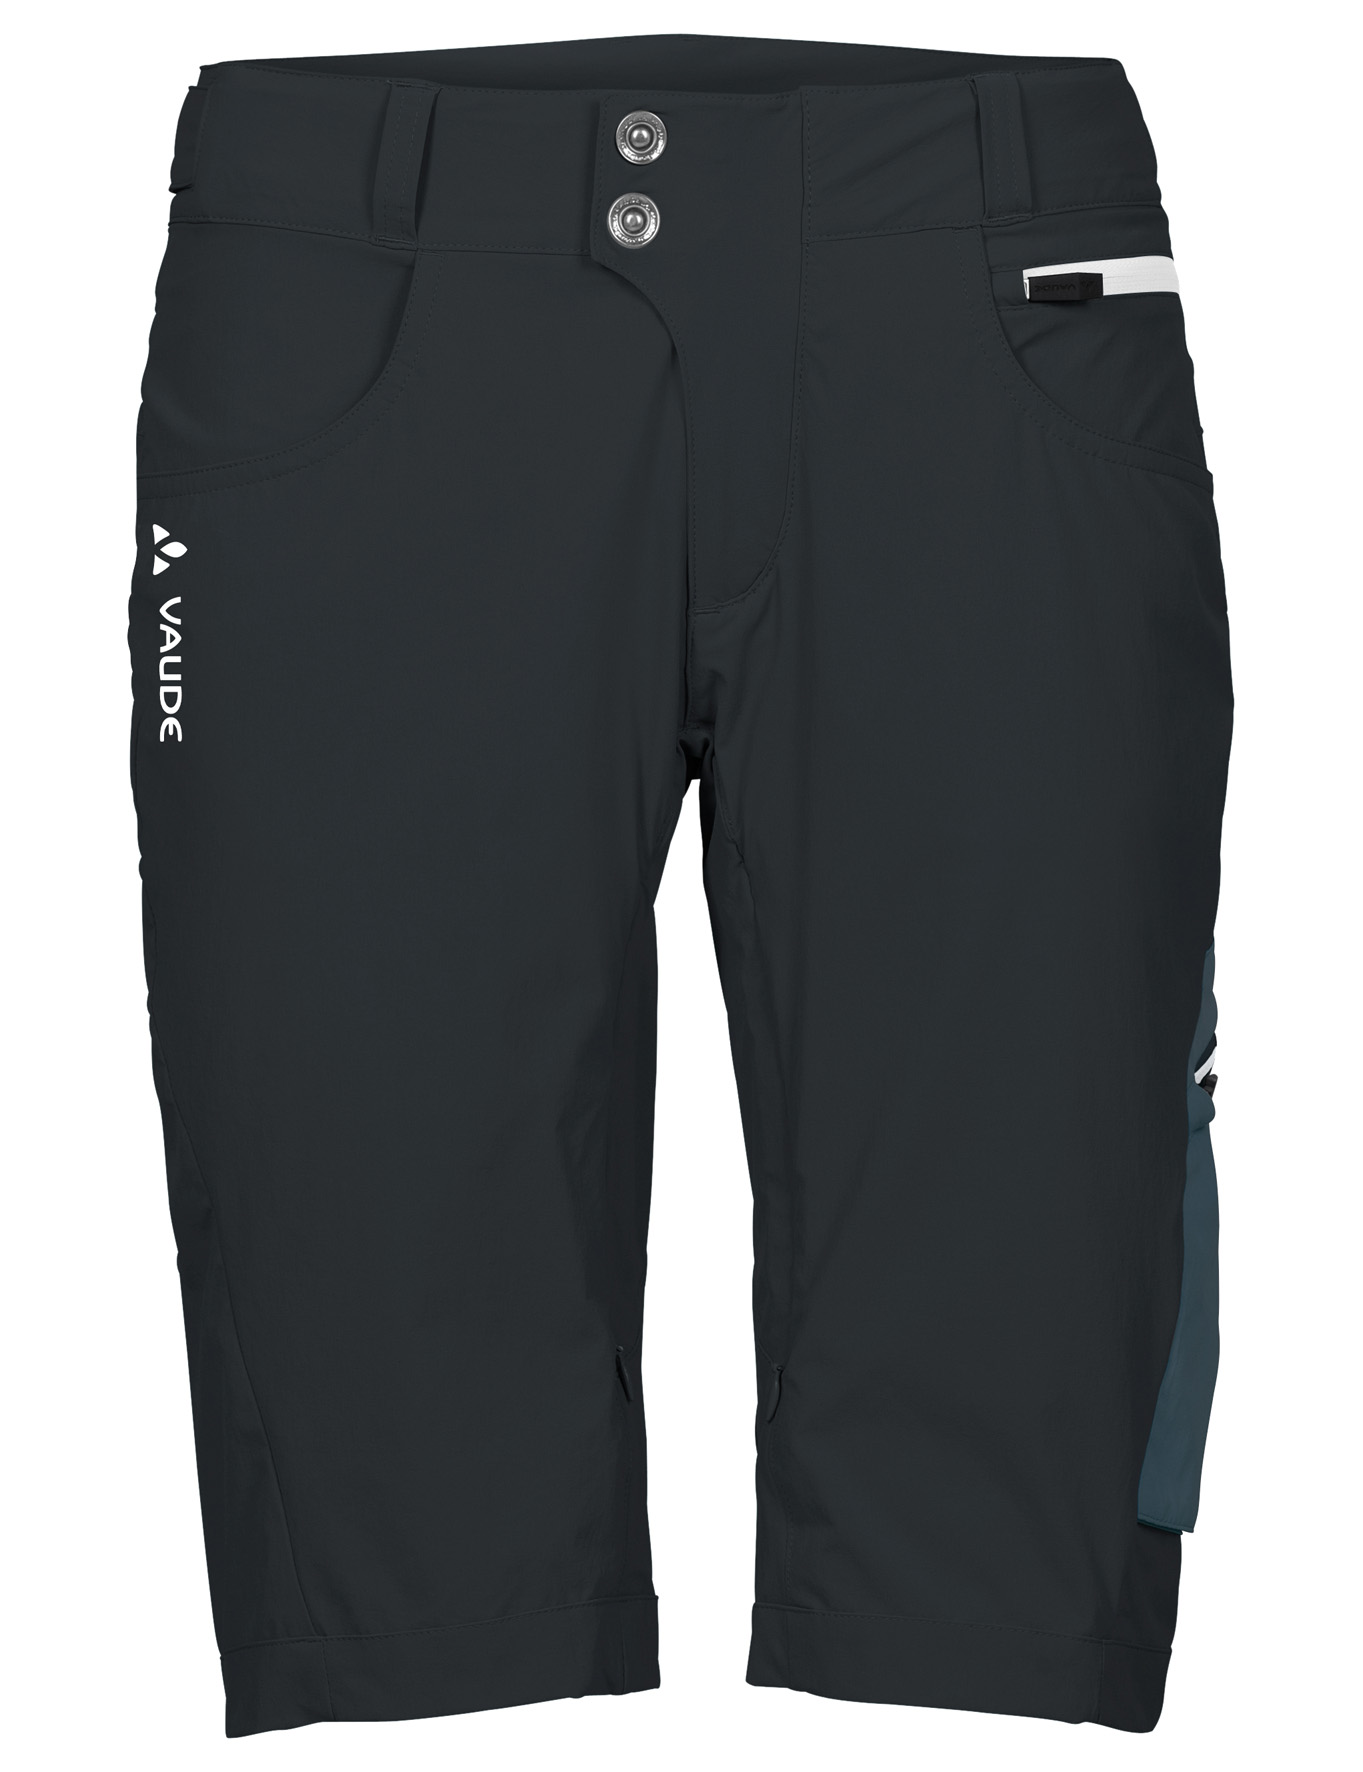 VAUDE Women´s Altissimo Shorts black Größe 36 - schneider-sports